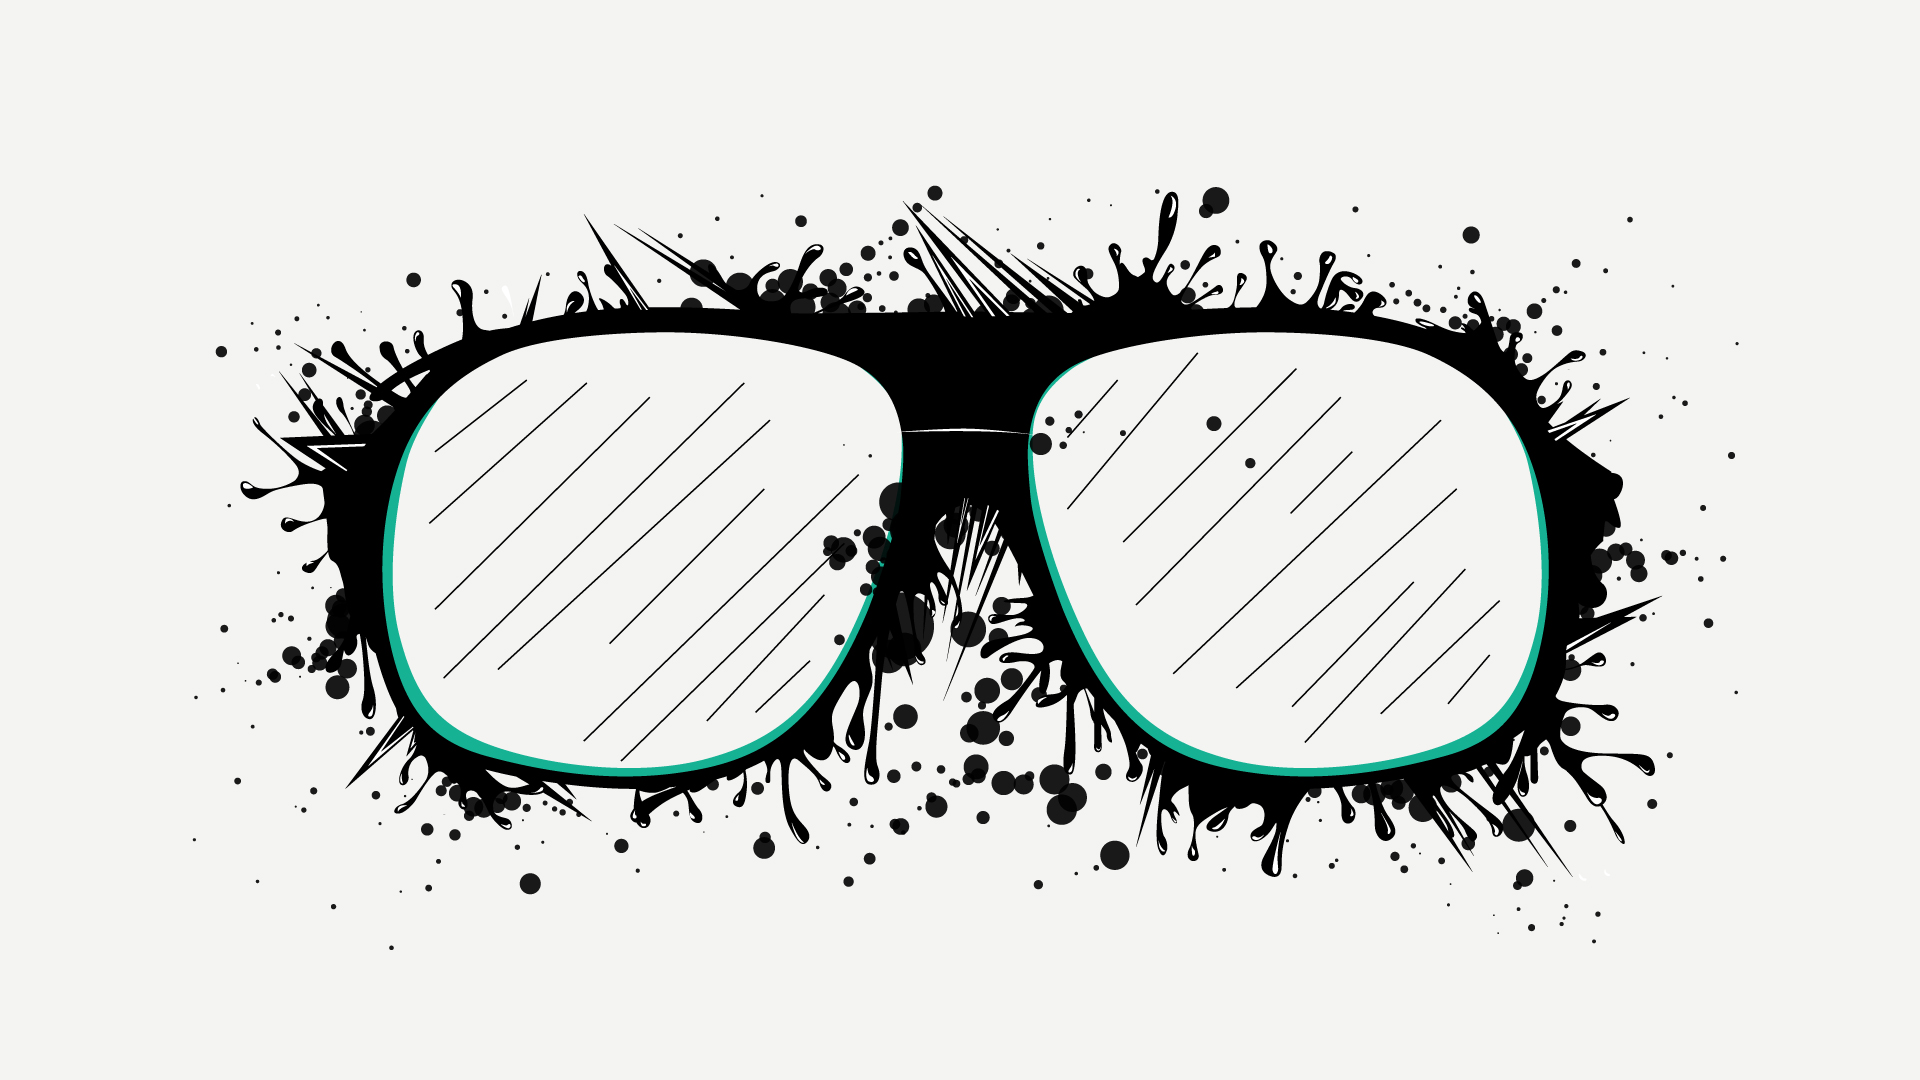 HD Quality Images of Glasses › #39717882 1920x1080